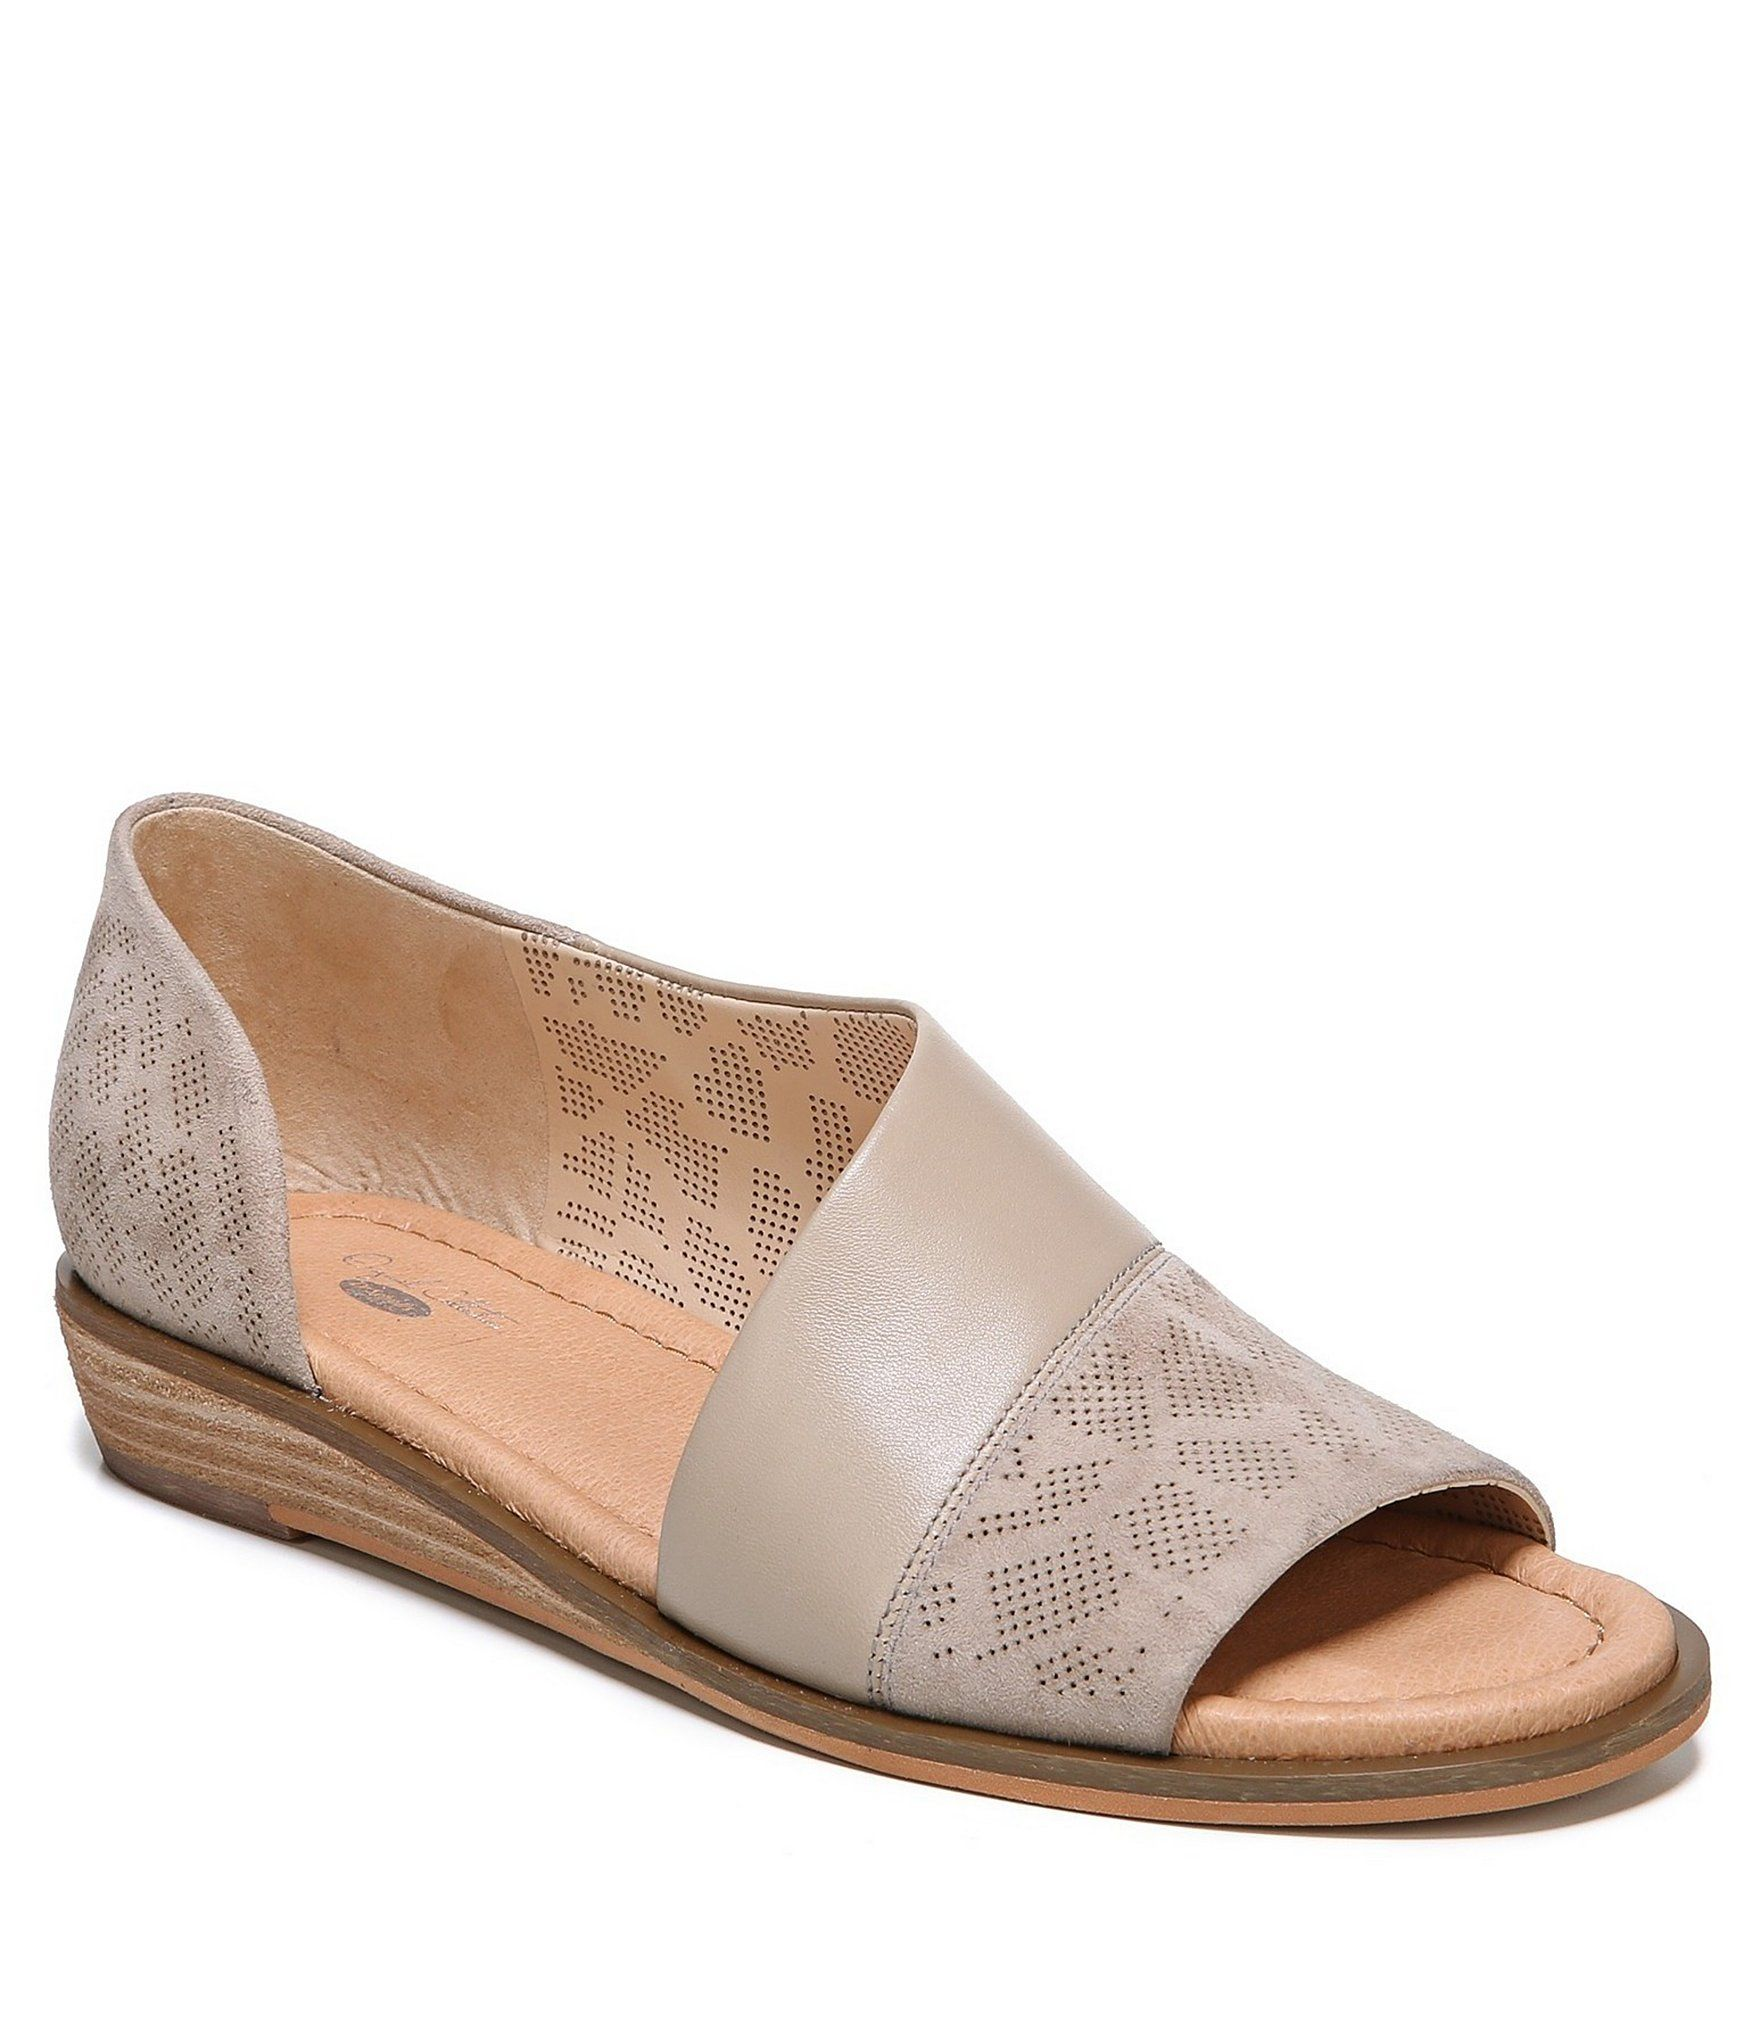 Fresco Suede and Leather Slip-On Flats 4IbGv